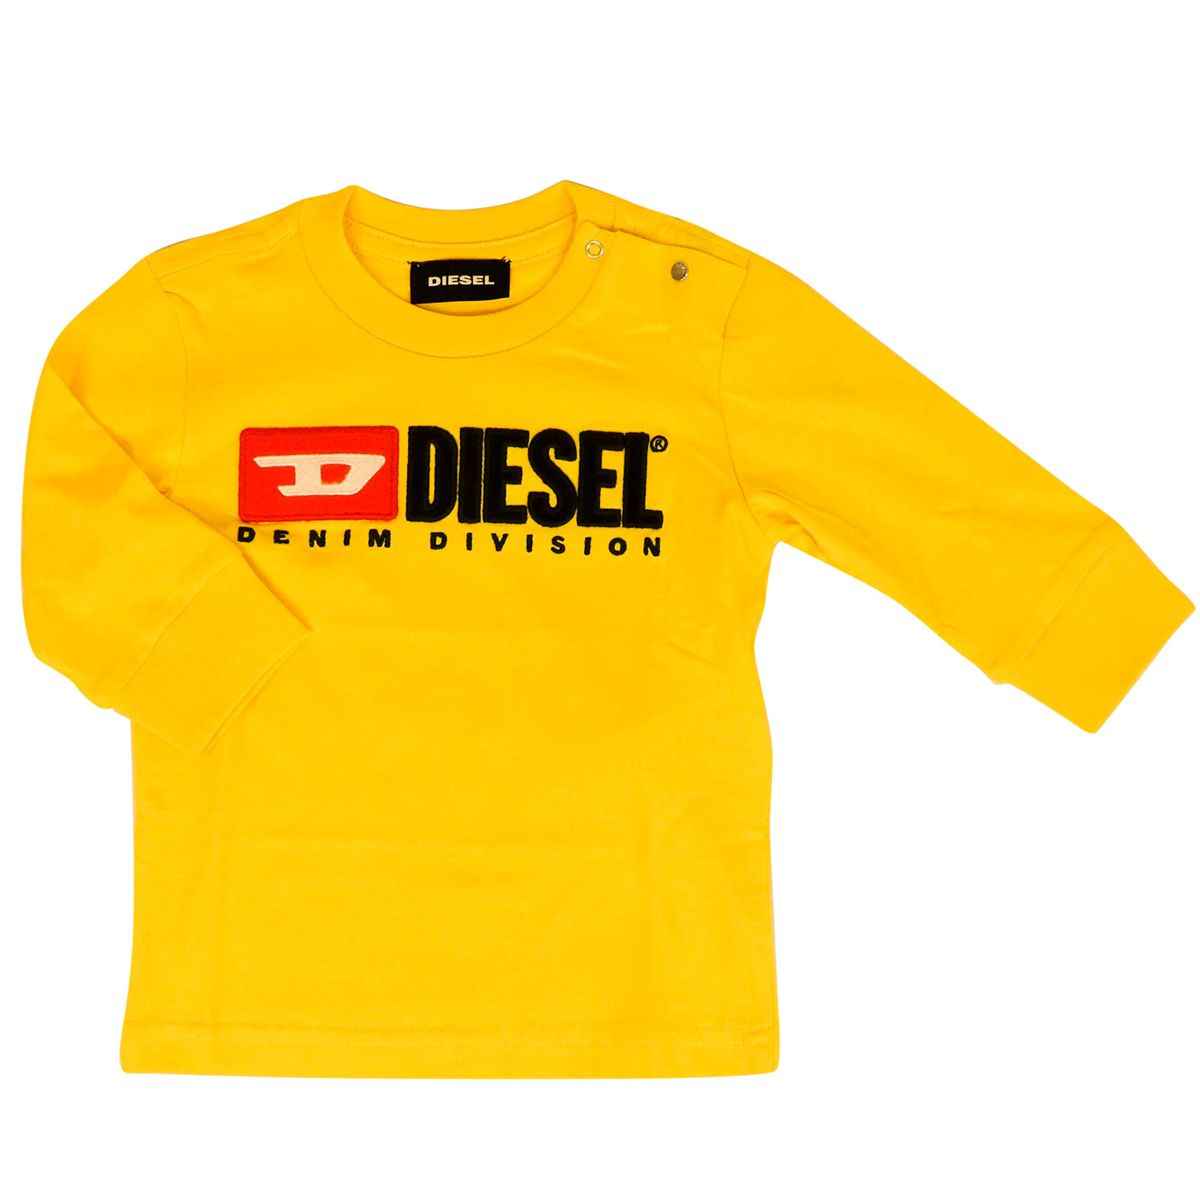 T-shirt with applied logo on the front Yellow Diesel